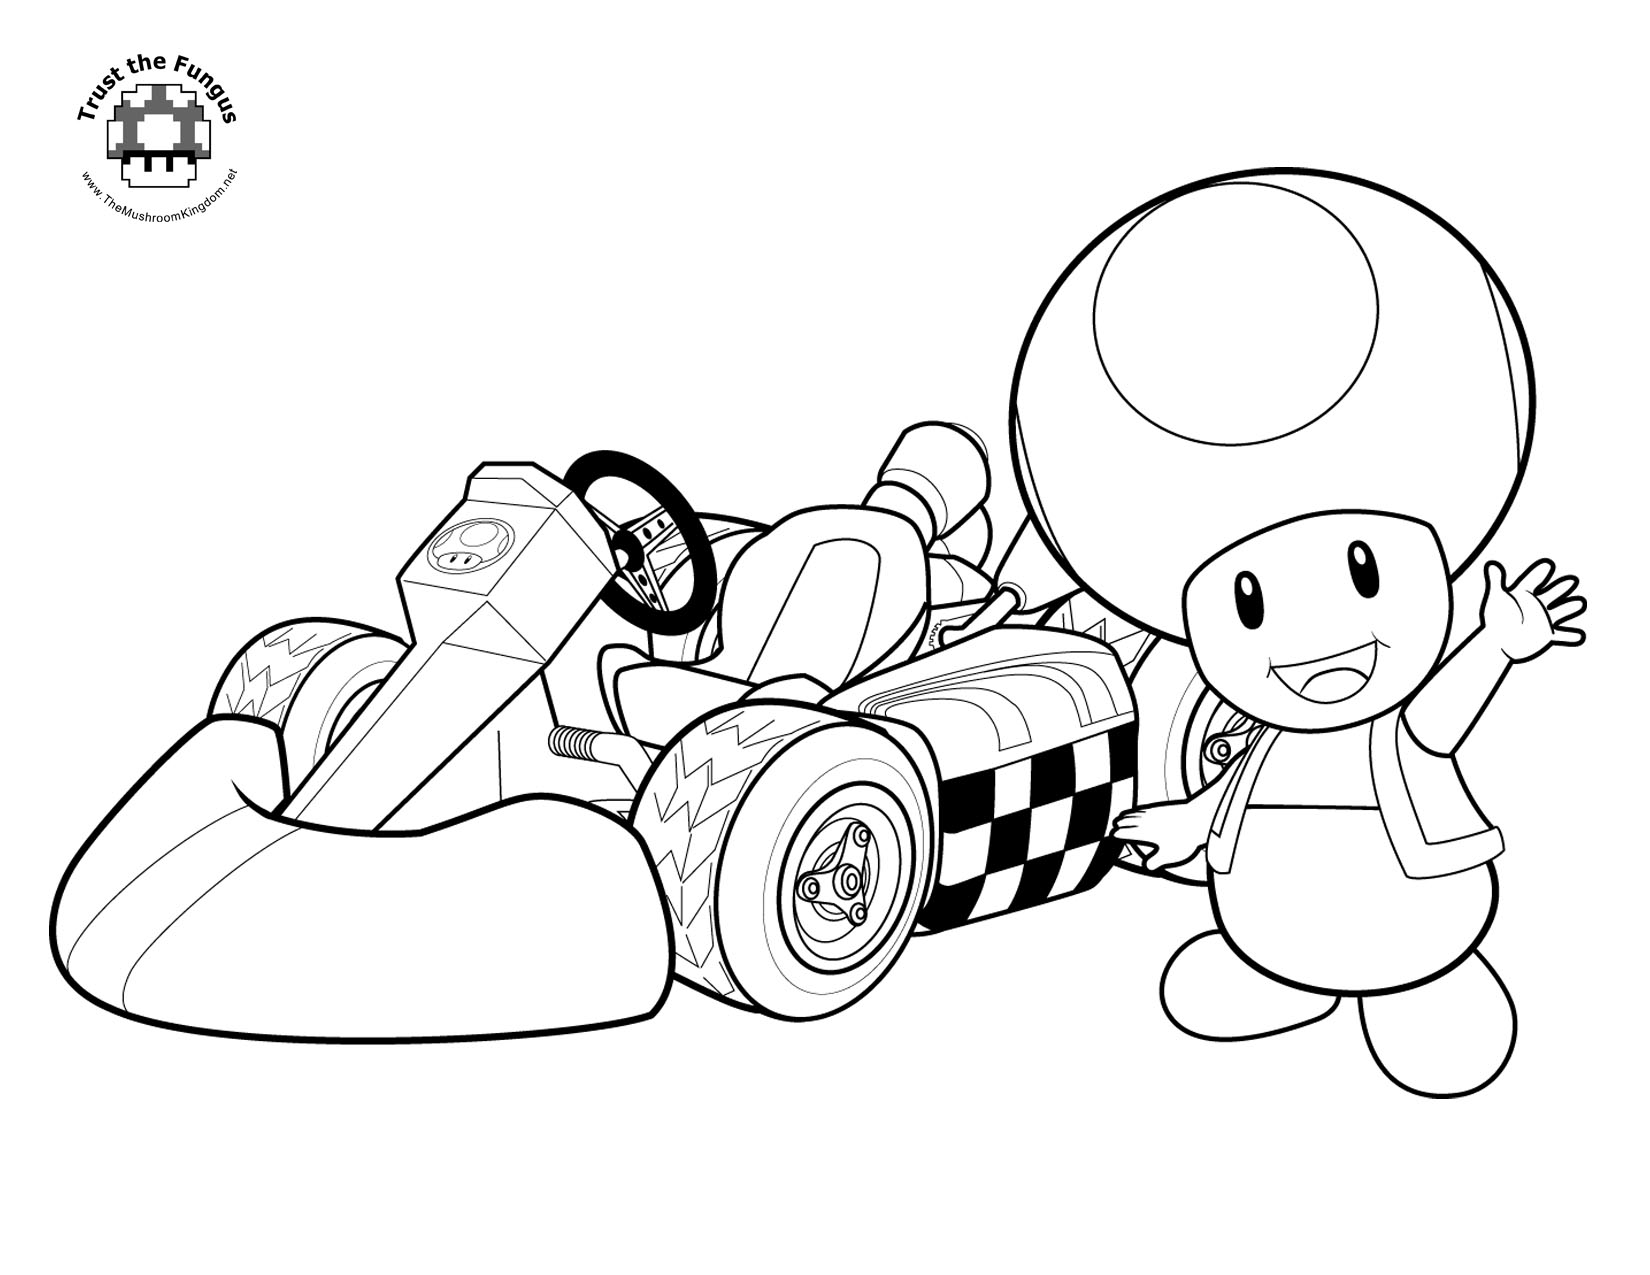 tmk presents mario kart wii coloring pages